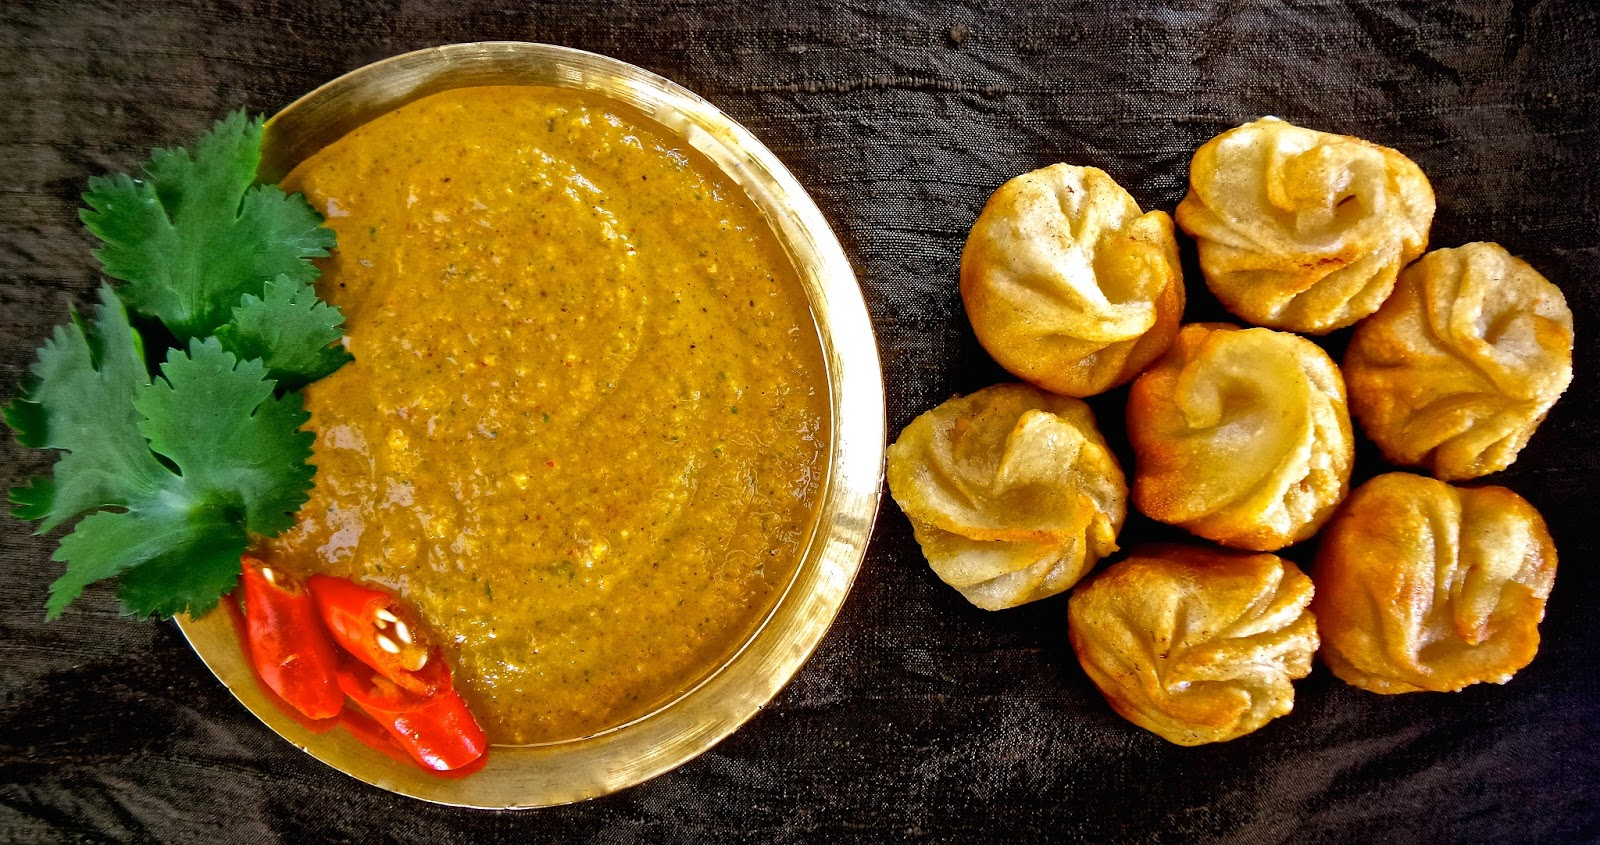 momo ko achar, Nepali, dumplings, momos, momo, chutney, hot, dip, dipping, authentic, traditional, sauce, tomato, timur, vegan, veg, vegetarian, recipe, easy, Nepal,